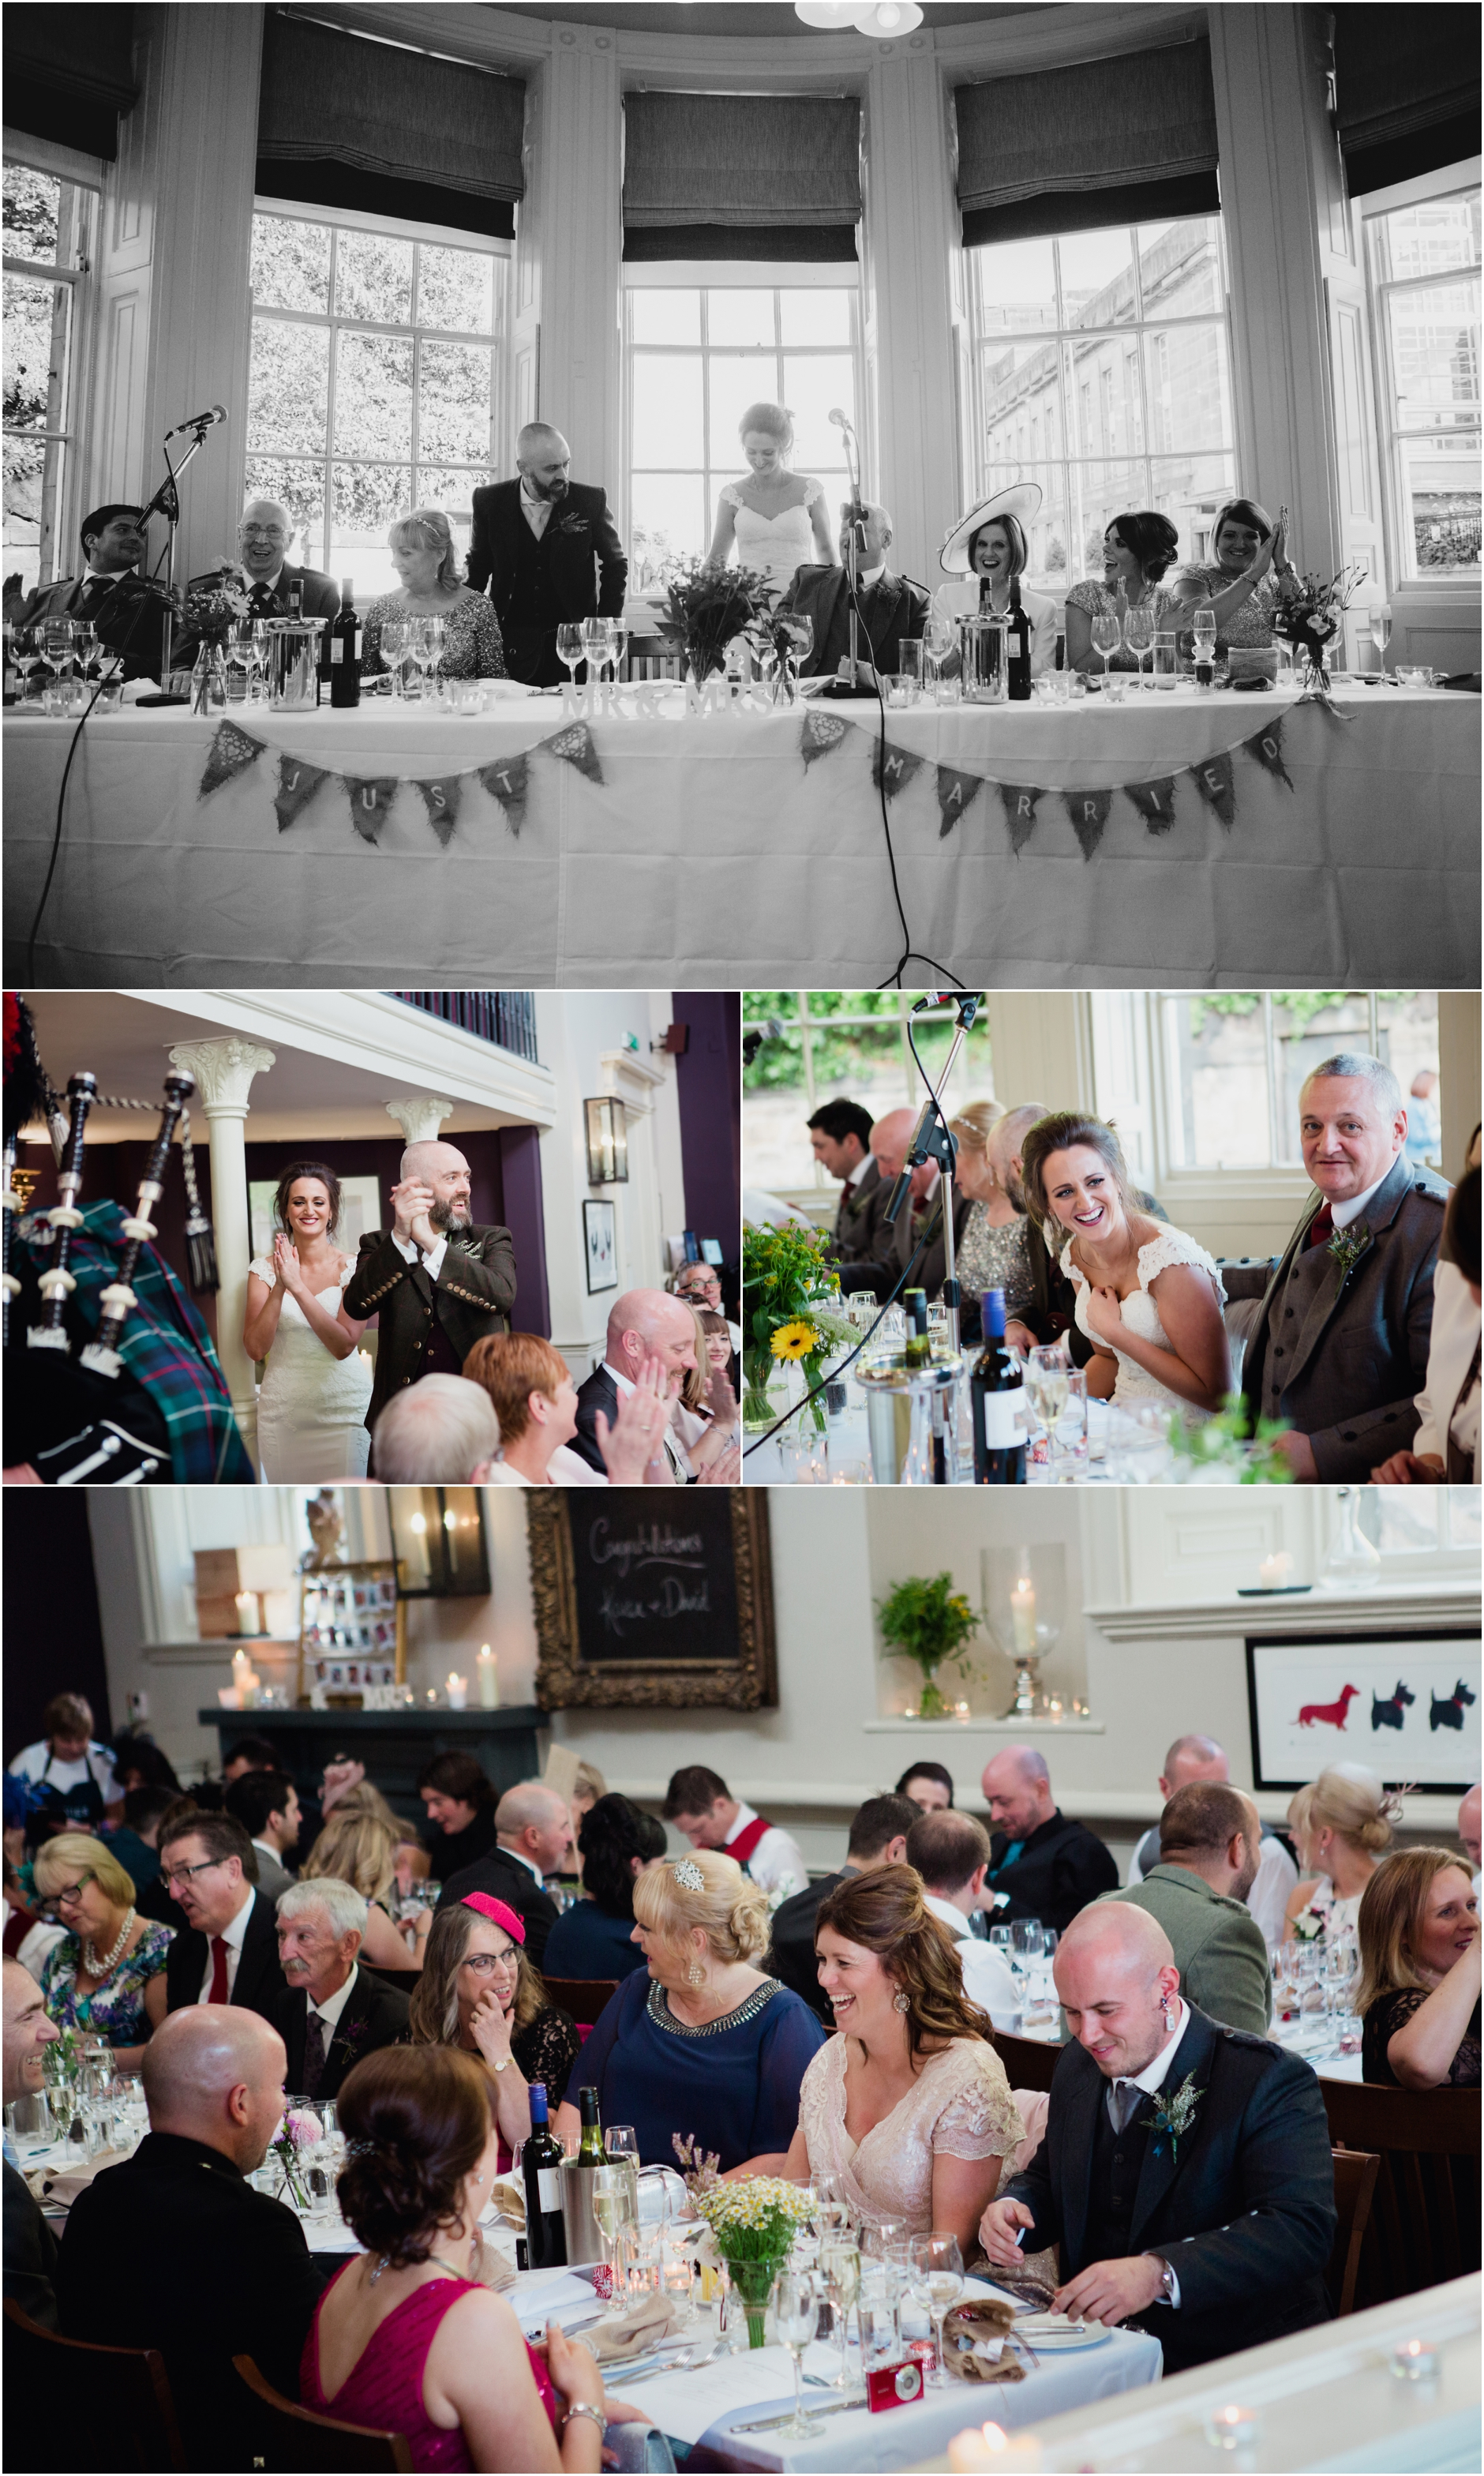 howies natural edinburgh wedding photographs